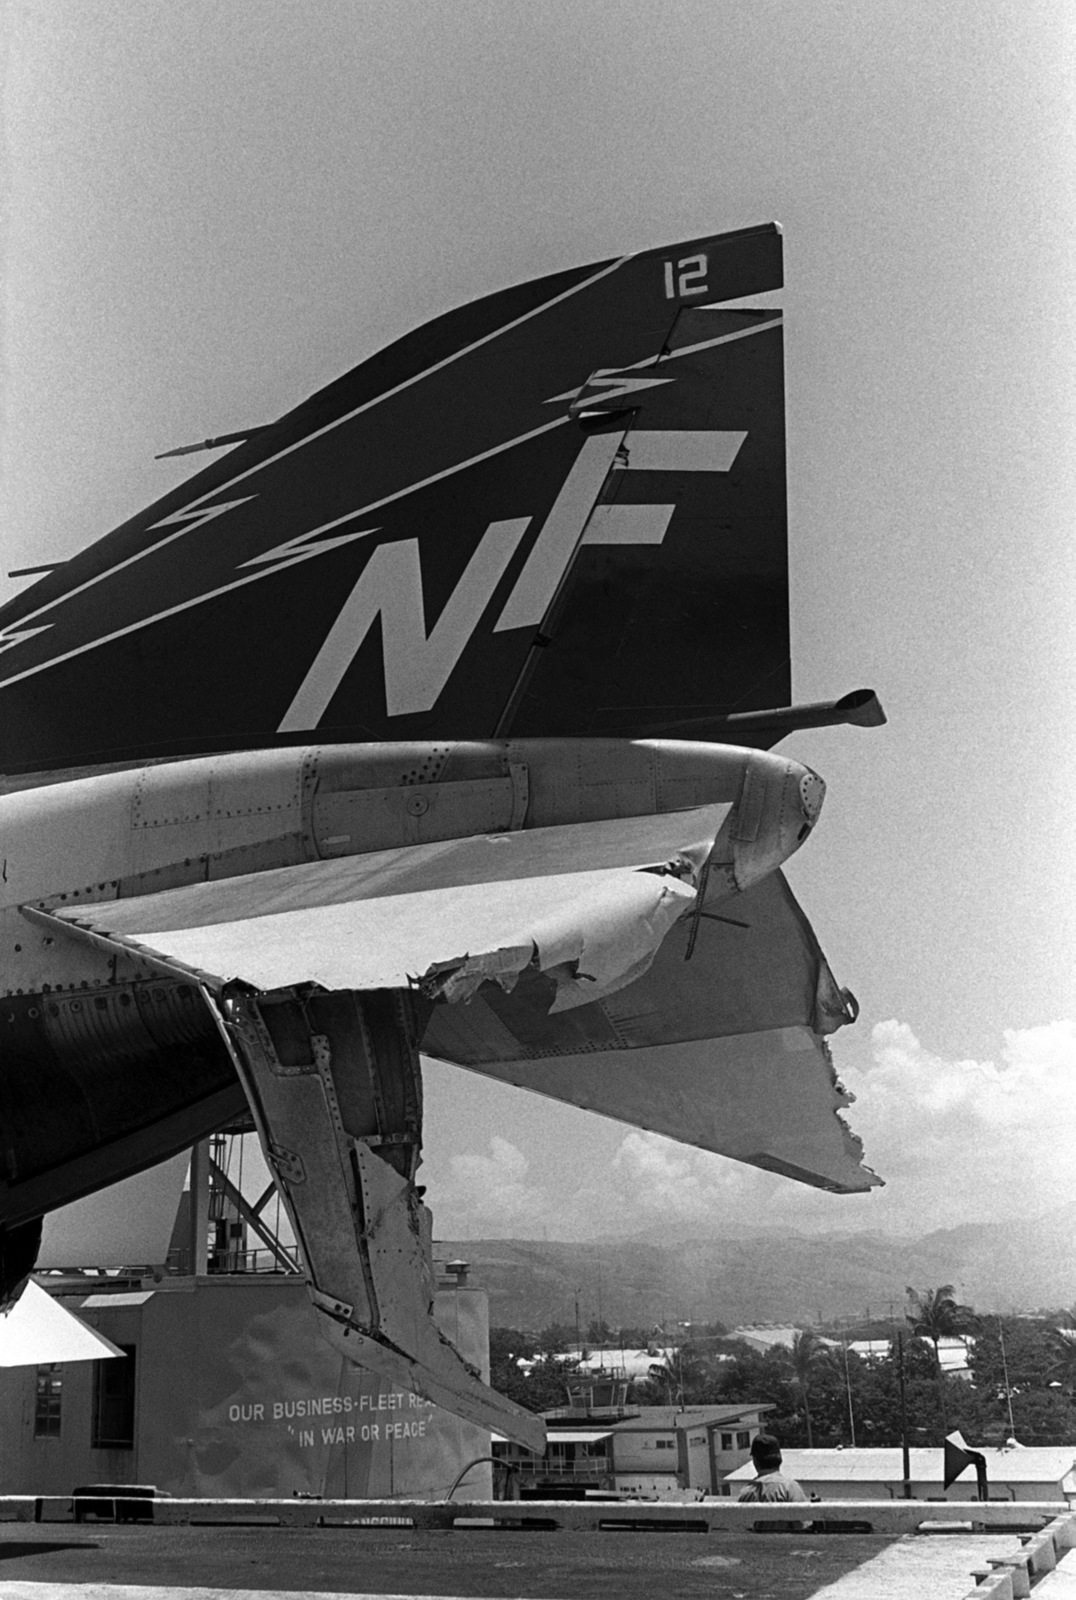 A view of damage caused to the tail section of an F-4 Phantom II aircraft when the aircraft carrier USS MIDWAY (CV 41) when it collided with the Panamanian freighter CACTUS